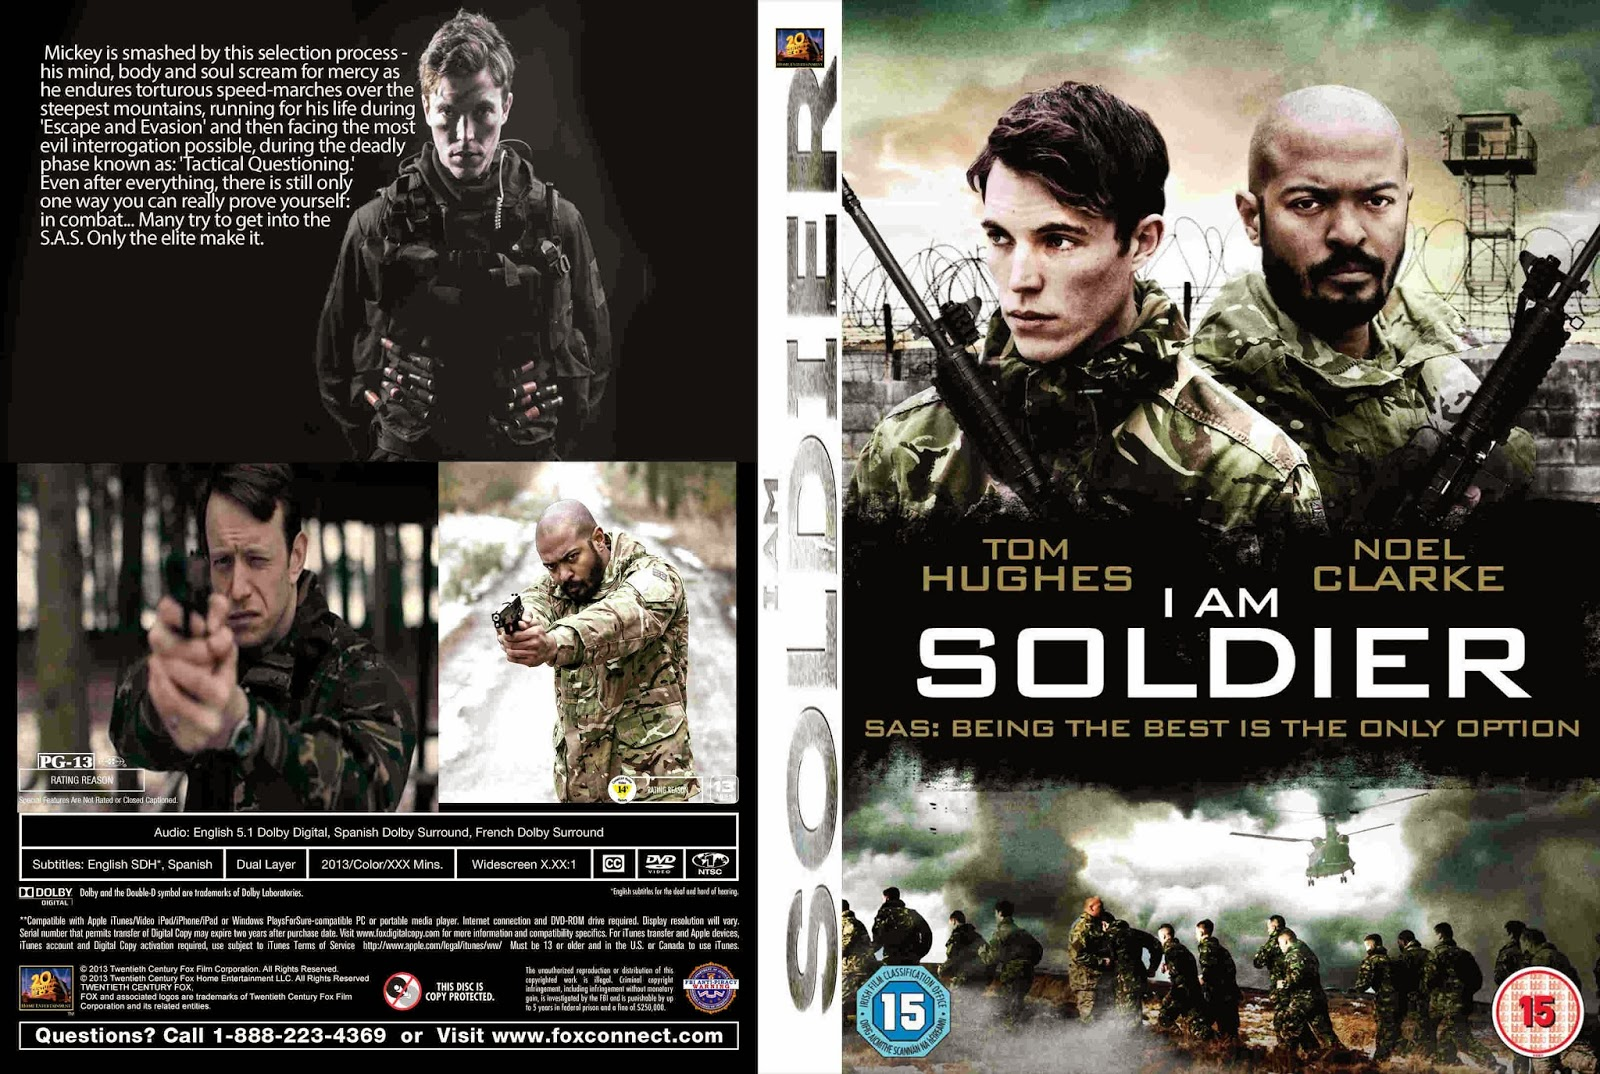 essay on if i am a soldier I am soldier follows mickey tomlinson (tom hughes), a military chef, who attempts the most dangerous military selection known to man: the special air service (sas) selection the sas is the united kingdom's most renowned special forces regiment, tasked with life threatening missions in some of the most dangerous places on the planet.